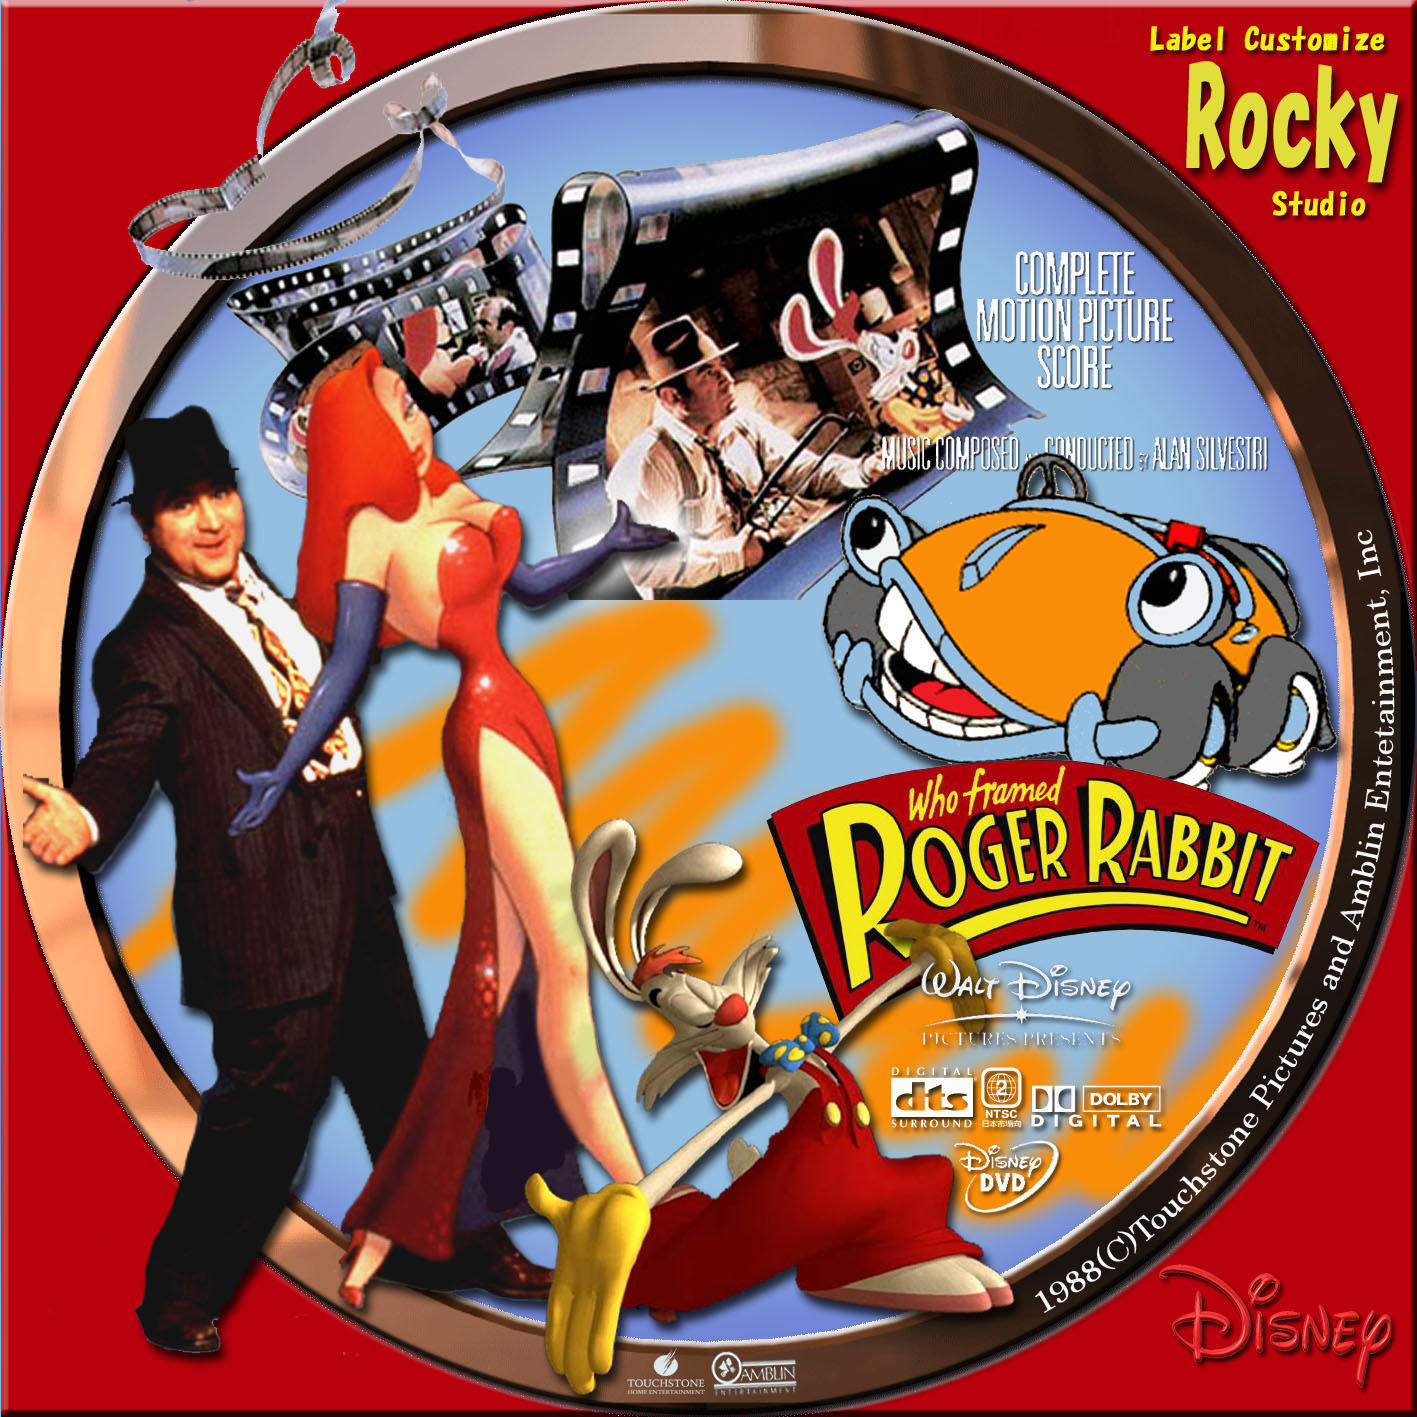 ロジャー・ラビット(1988)    WHO FRAMED ROGER RABBIT